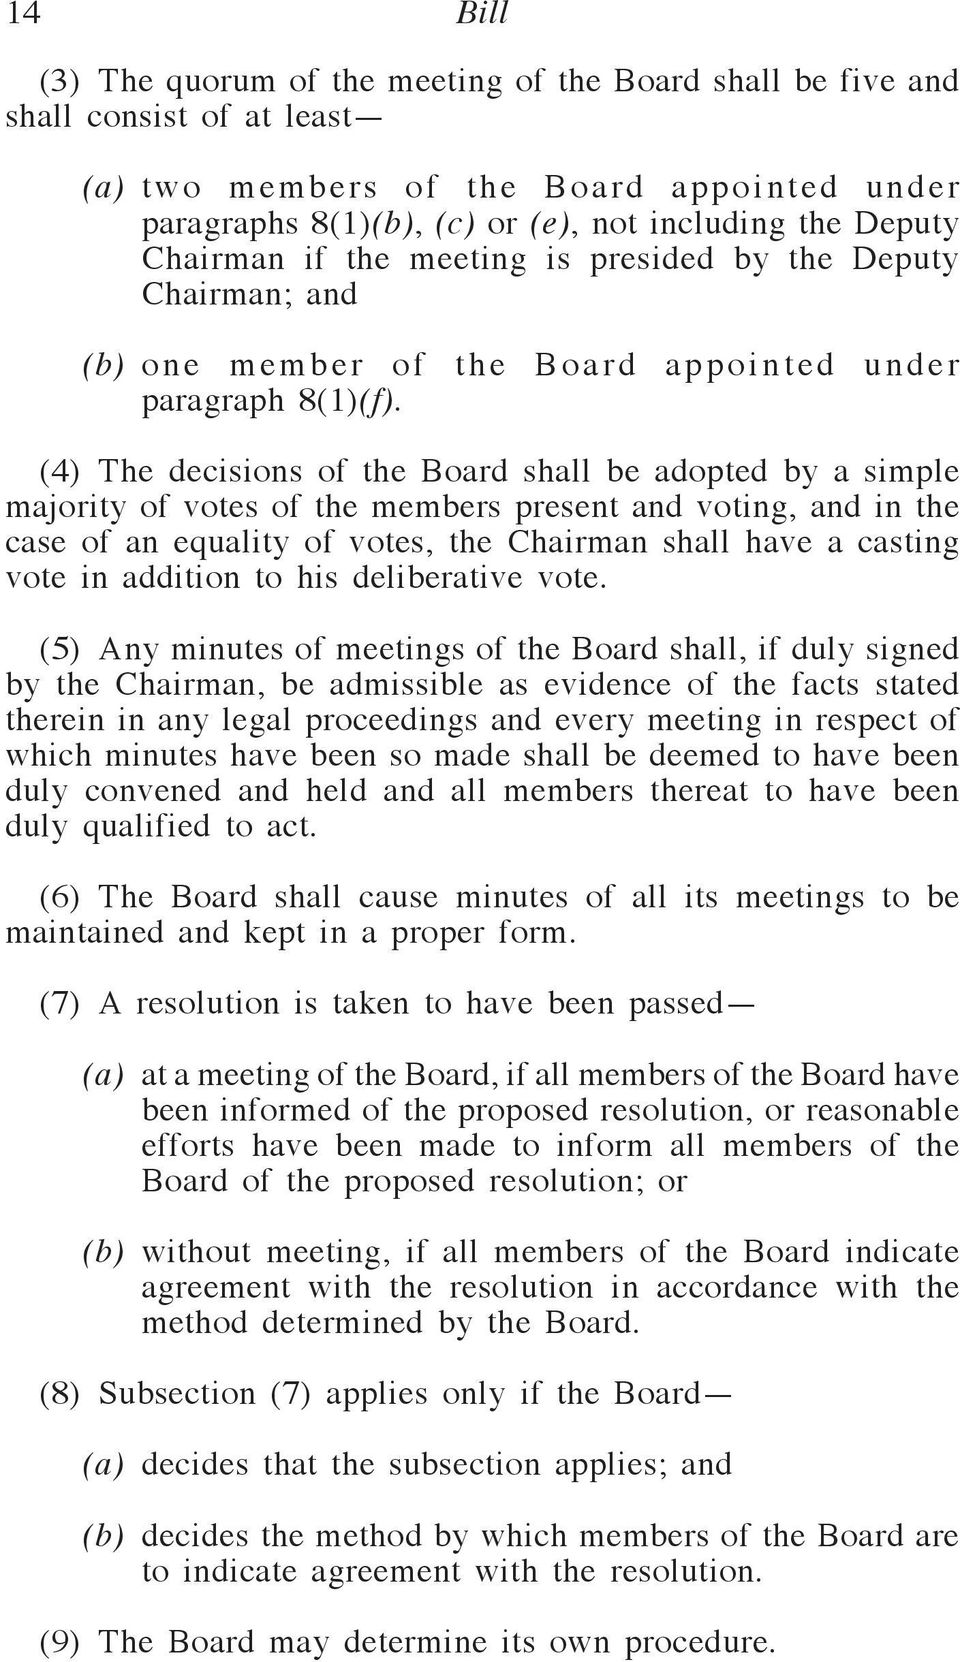 (4) The decisions of the Board shall be adopted by a simple majority of votes of the members present and voting, and in the case of an equality of votes, the Chairman shall have a casting vote in